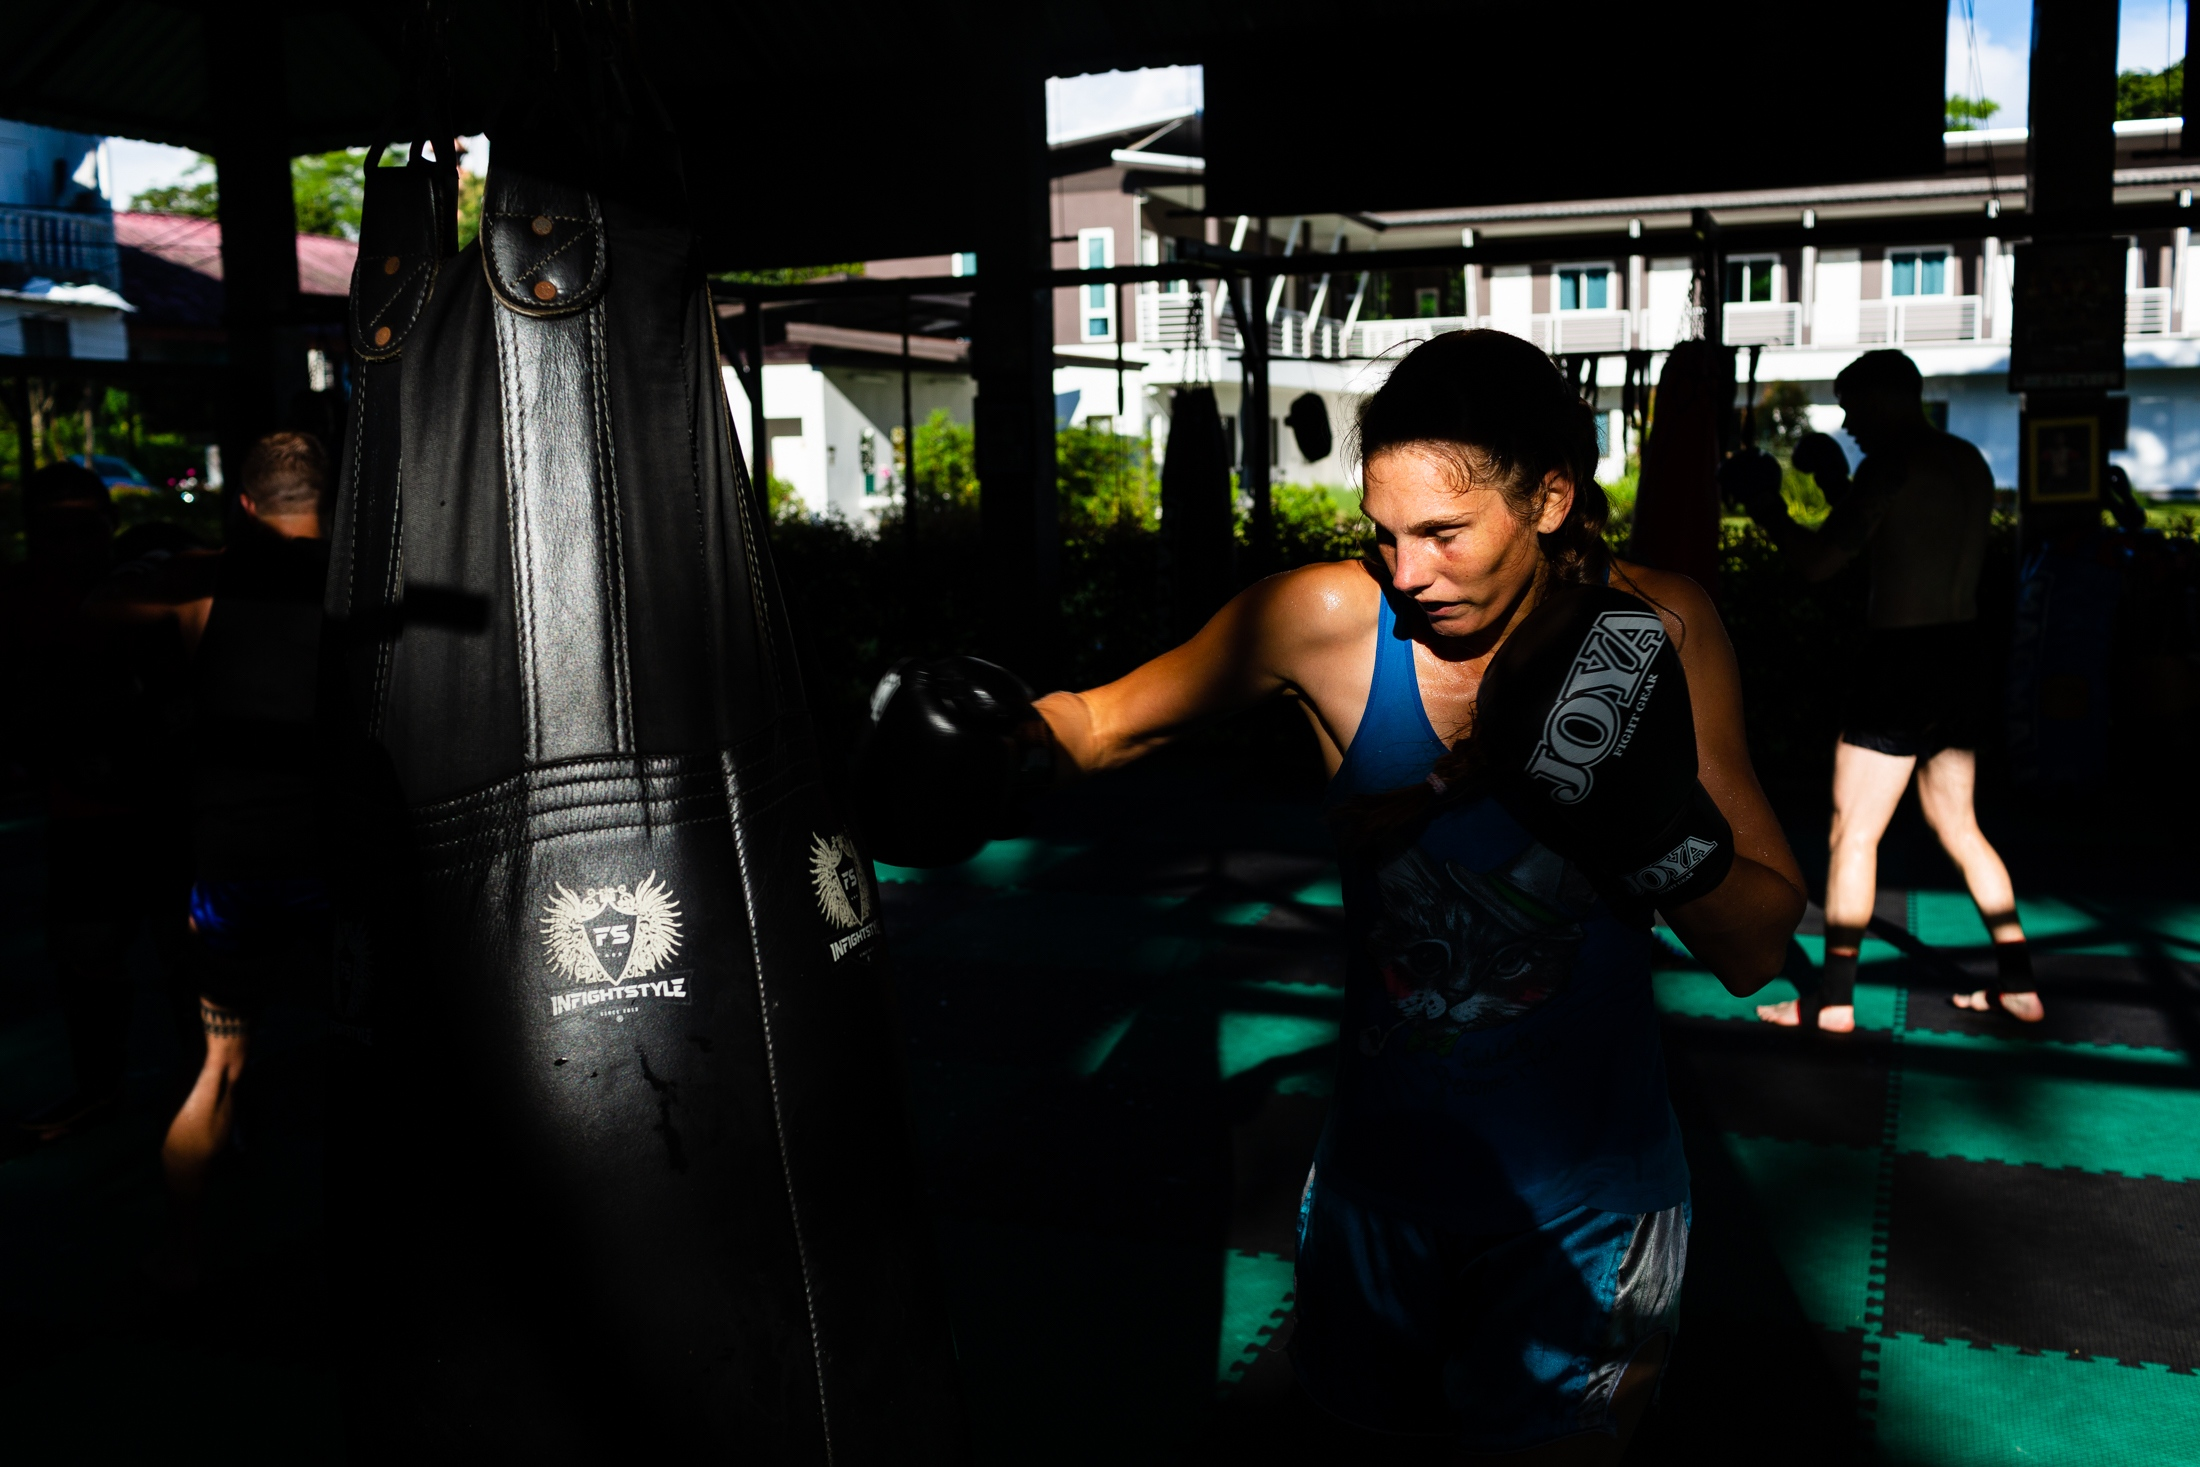 Lisanne van der Molen practices punches on a boxing bag during a training session at the Hongthong gym in Chiang Mai, Thailand, 20 th September 2018. Lisanne is one of the many foreigners that come to Chiang Mai to practice Muay Thai. She practices in Thailand because here she can fight regularly in a professional environment. In South America or Europe, she struggles to find enough fights. Originally from Holland, she now represents Peru, her husband and coach country, in international competitions. Lisanne won the gold medal at the Pan-American Games in 2016, 2017 and 2018 and got a bronze medal during the Muay Thai World Cup in 2017.